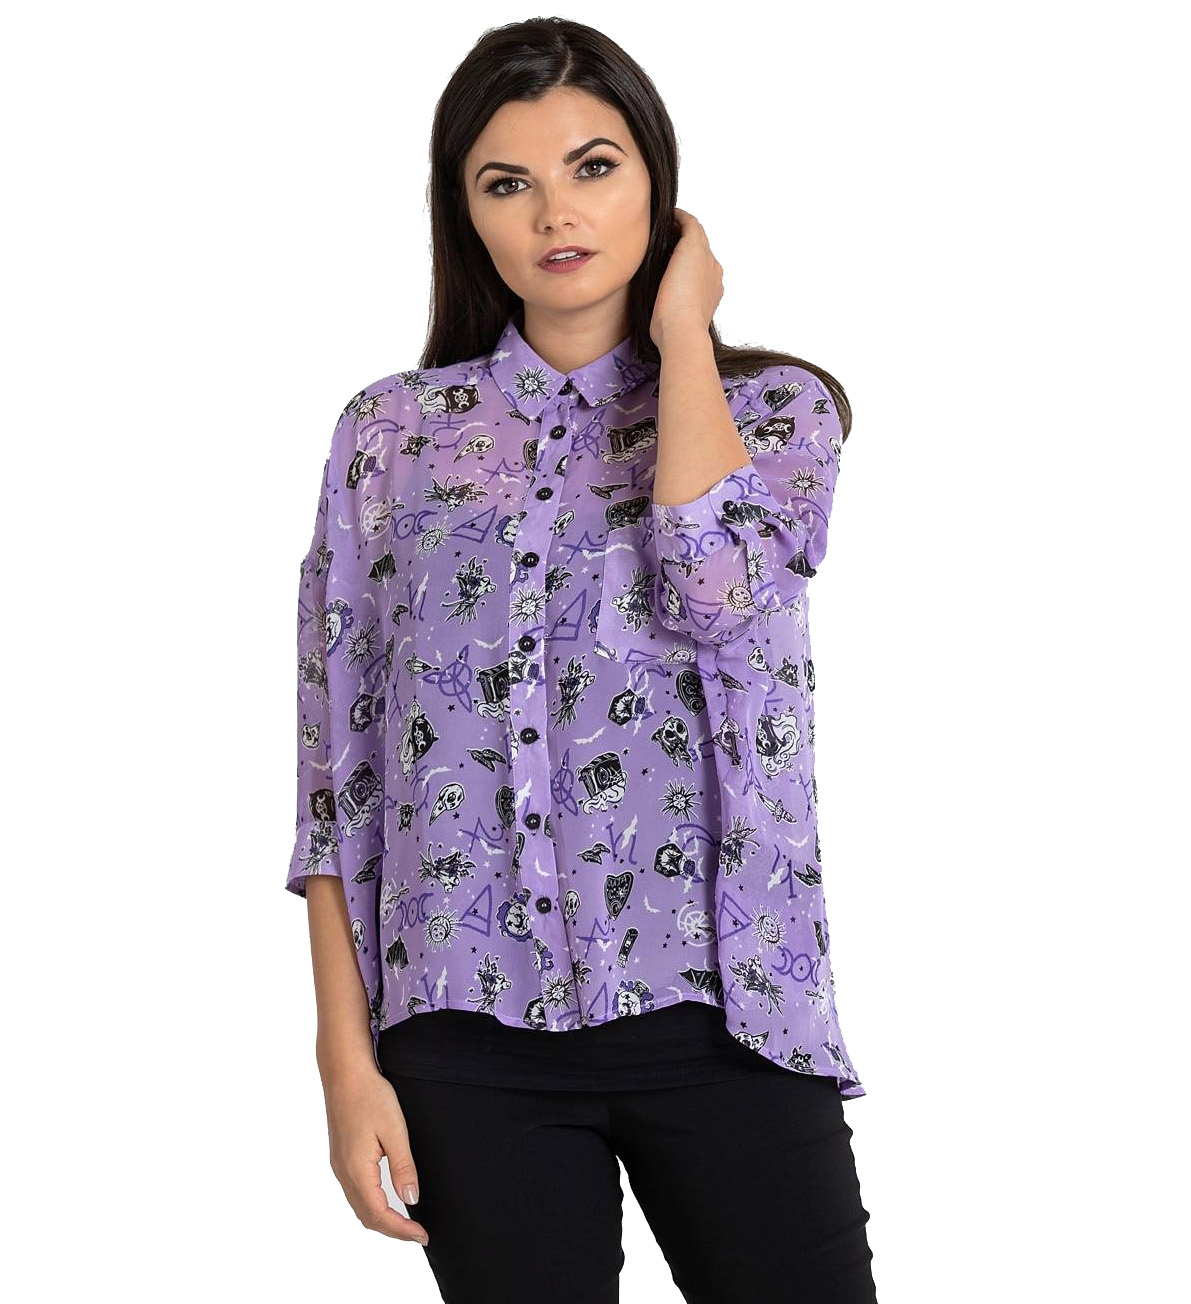 Hell-Bunny-Shirt-Top-Gothic-Witchy-ELSPETH-Lavender-Purple-Blouse-All-Sizes thumbnail 3